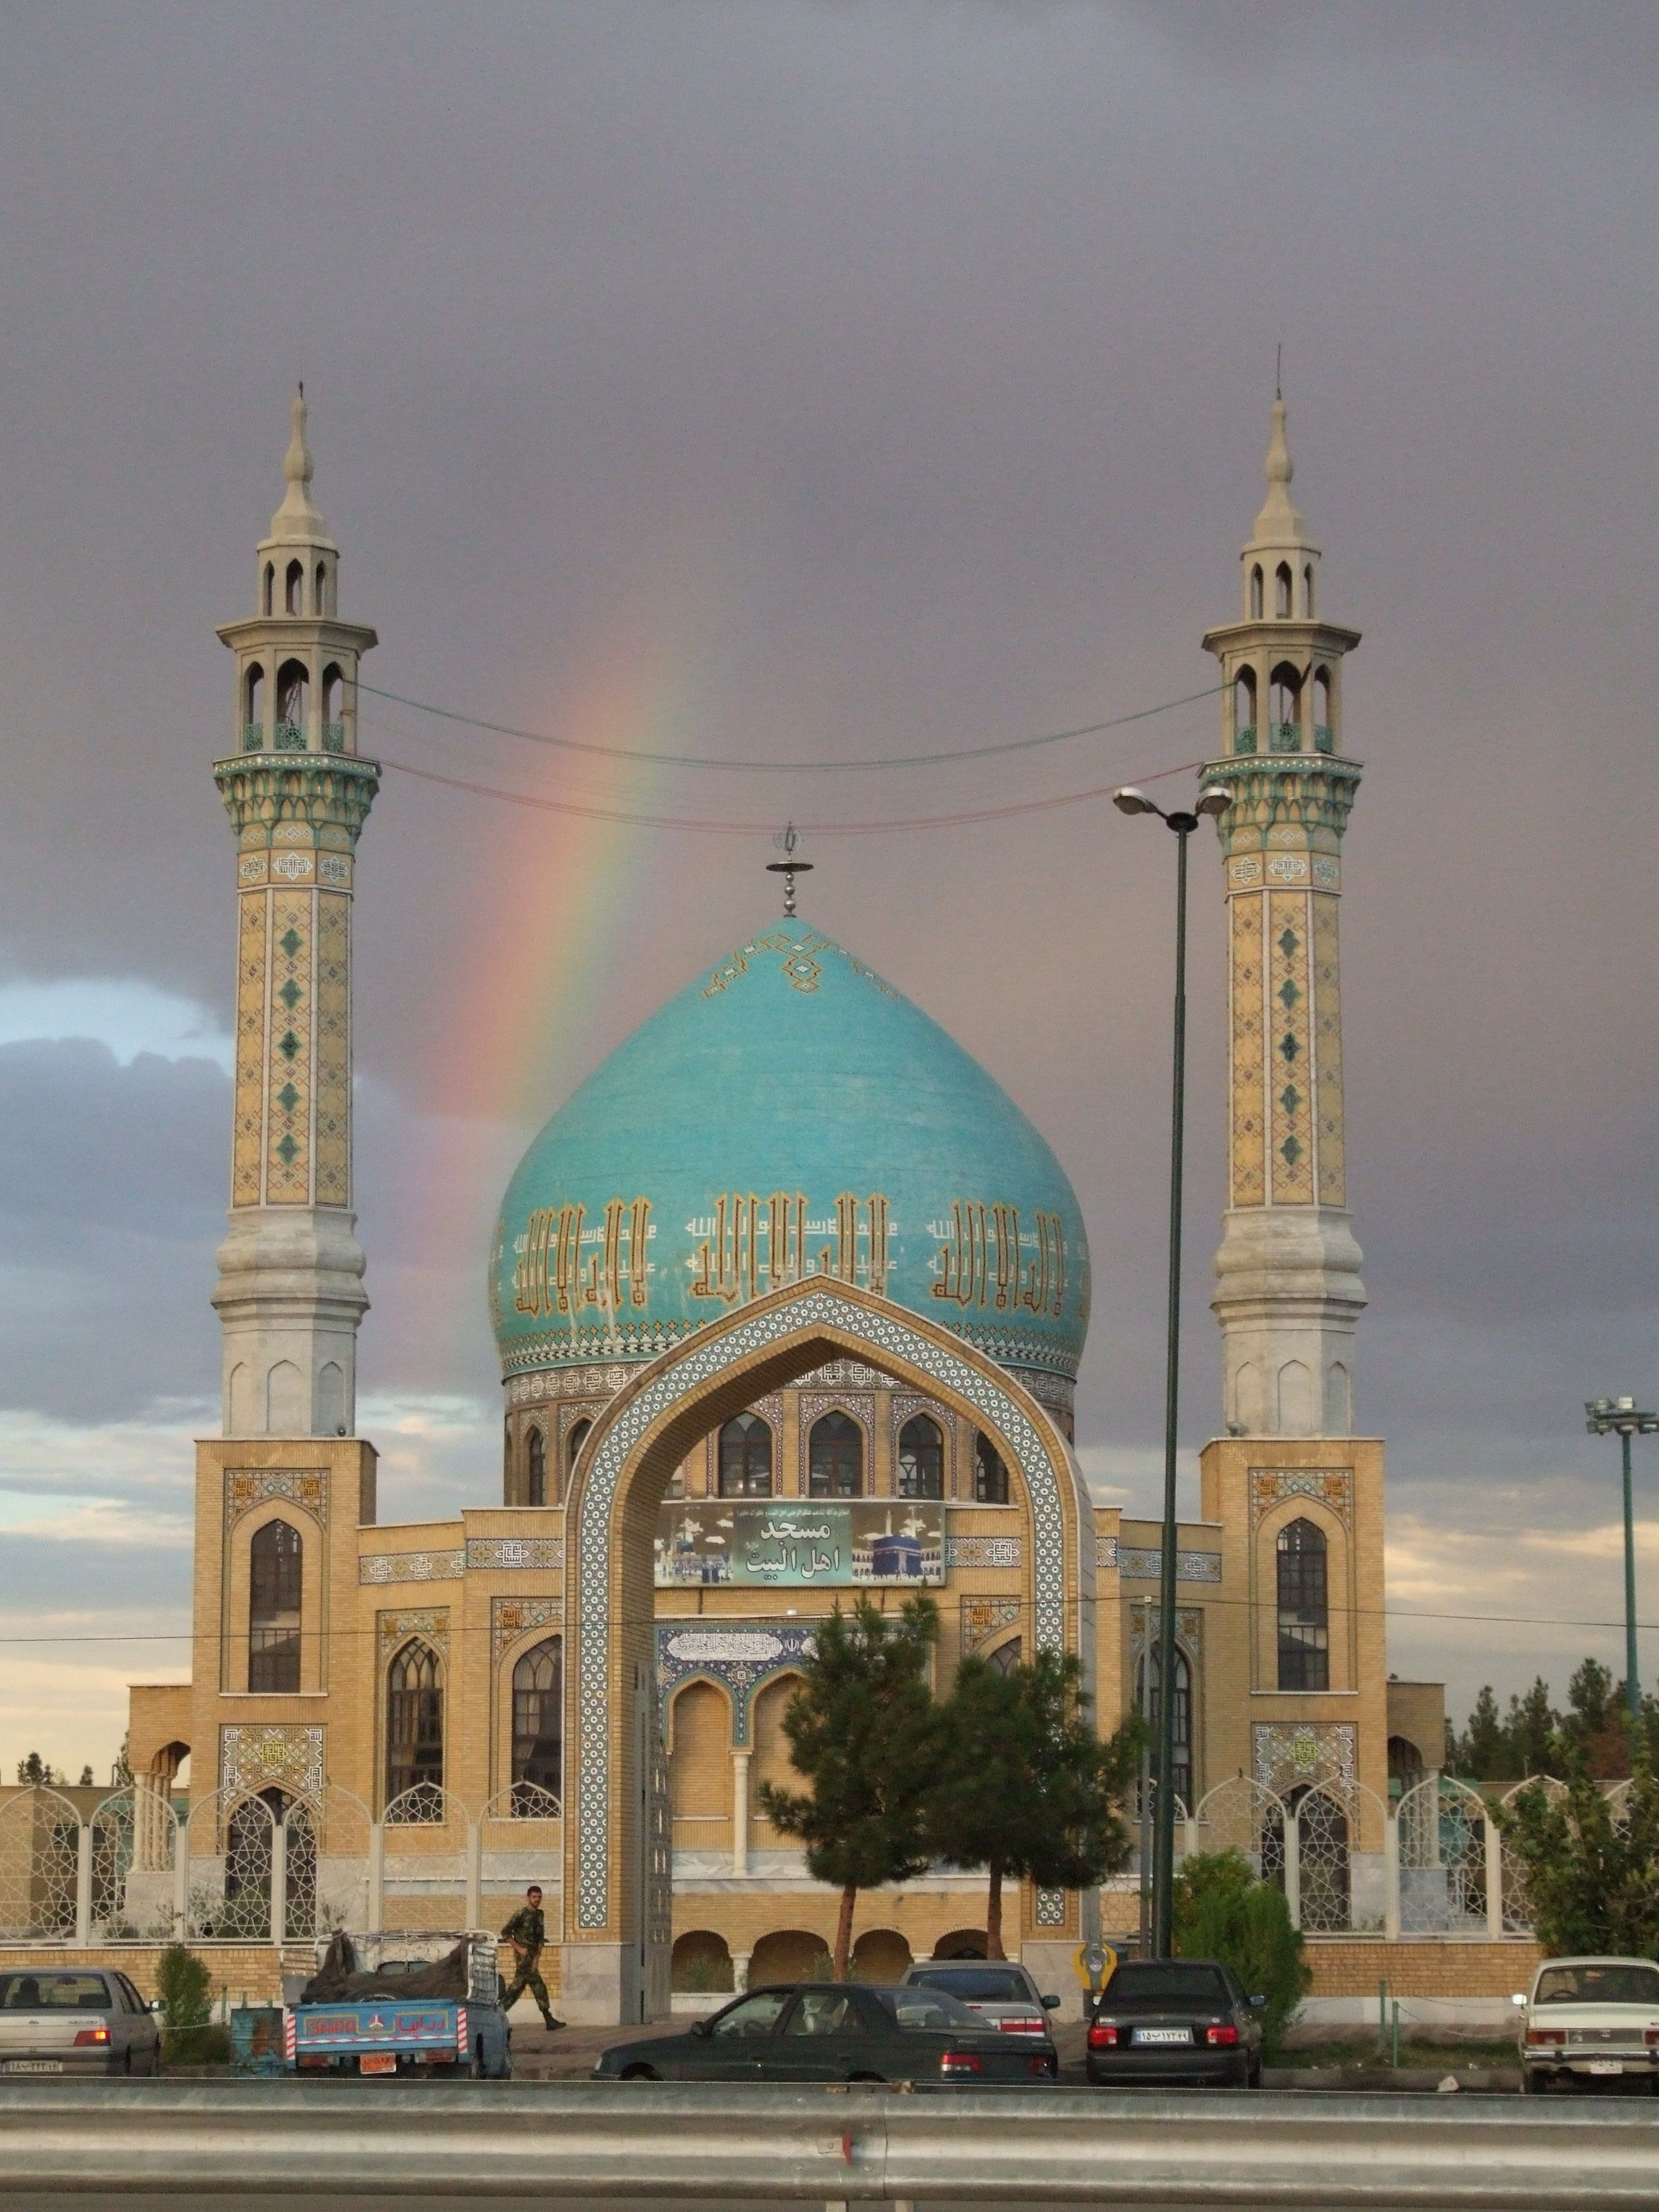 Turquoise Masjid. See The Rainbow? Couldn't Be More